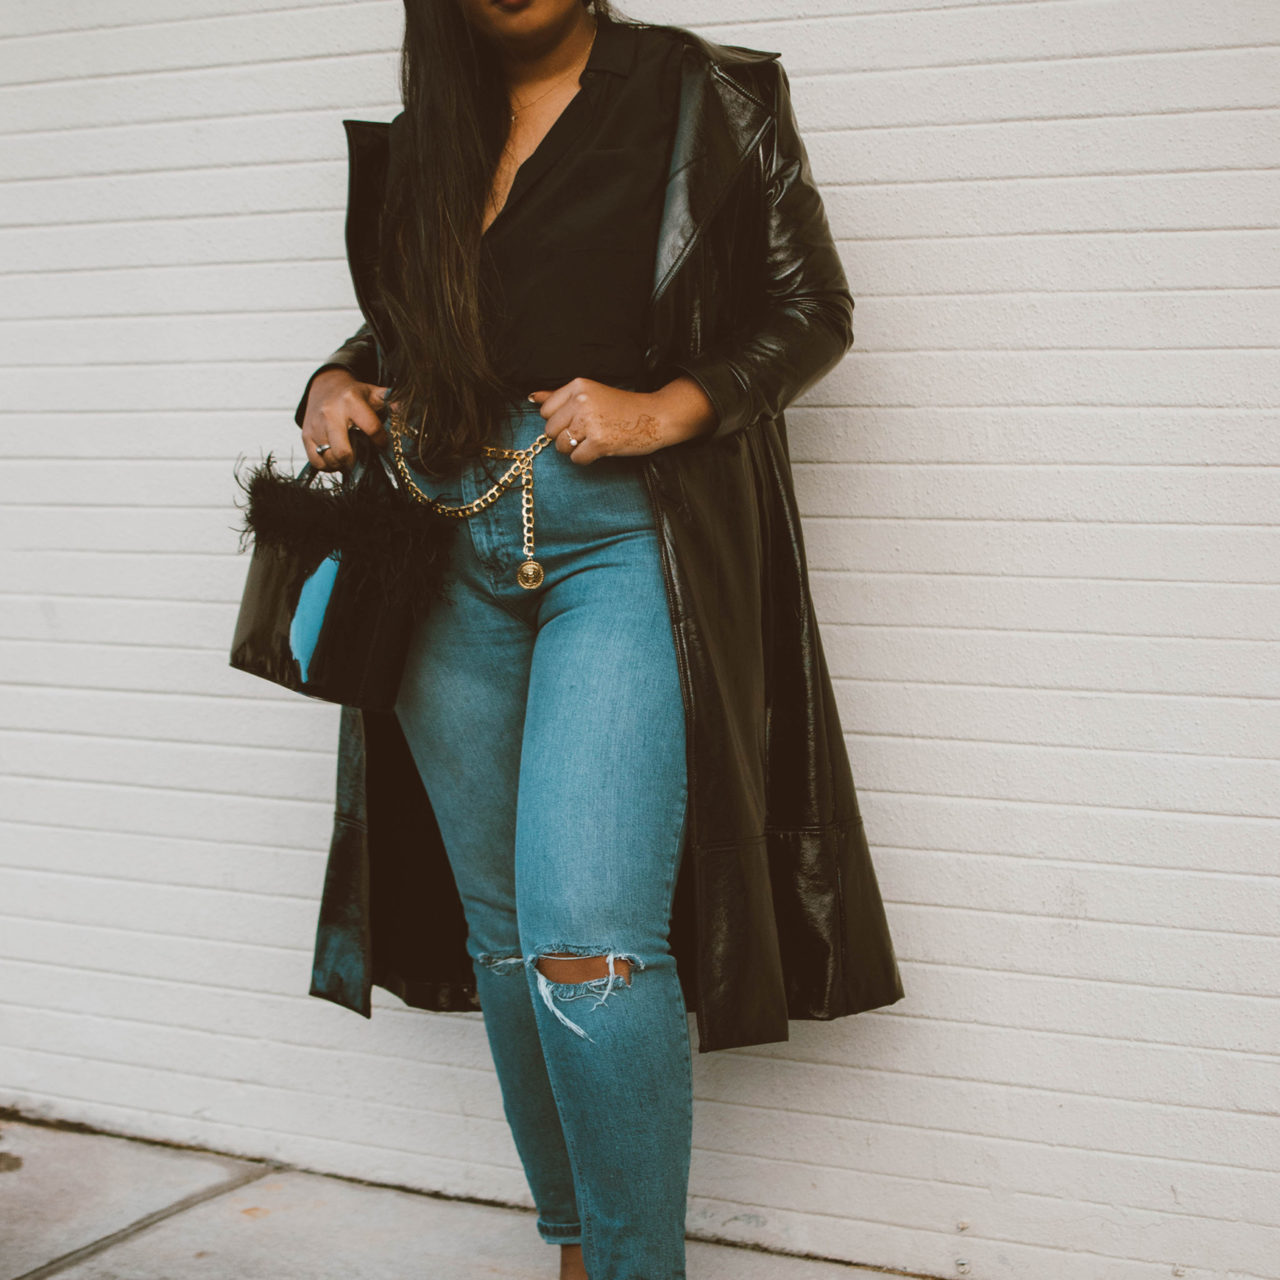 What's Trending: The Patent Leather Trench Coat